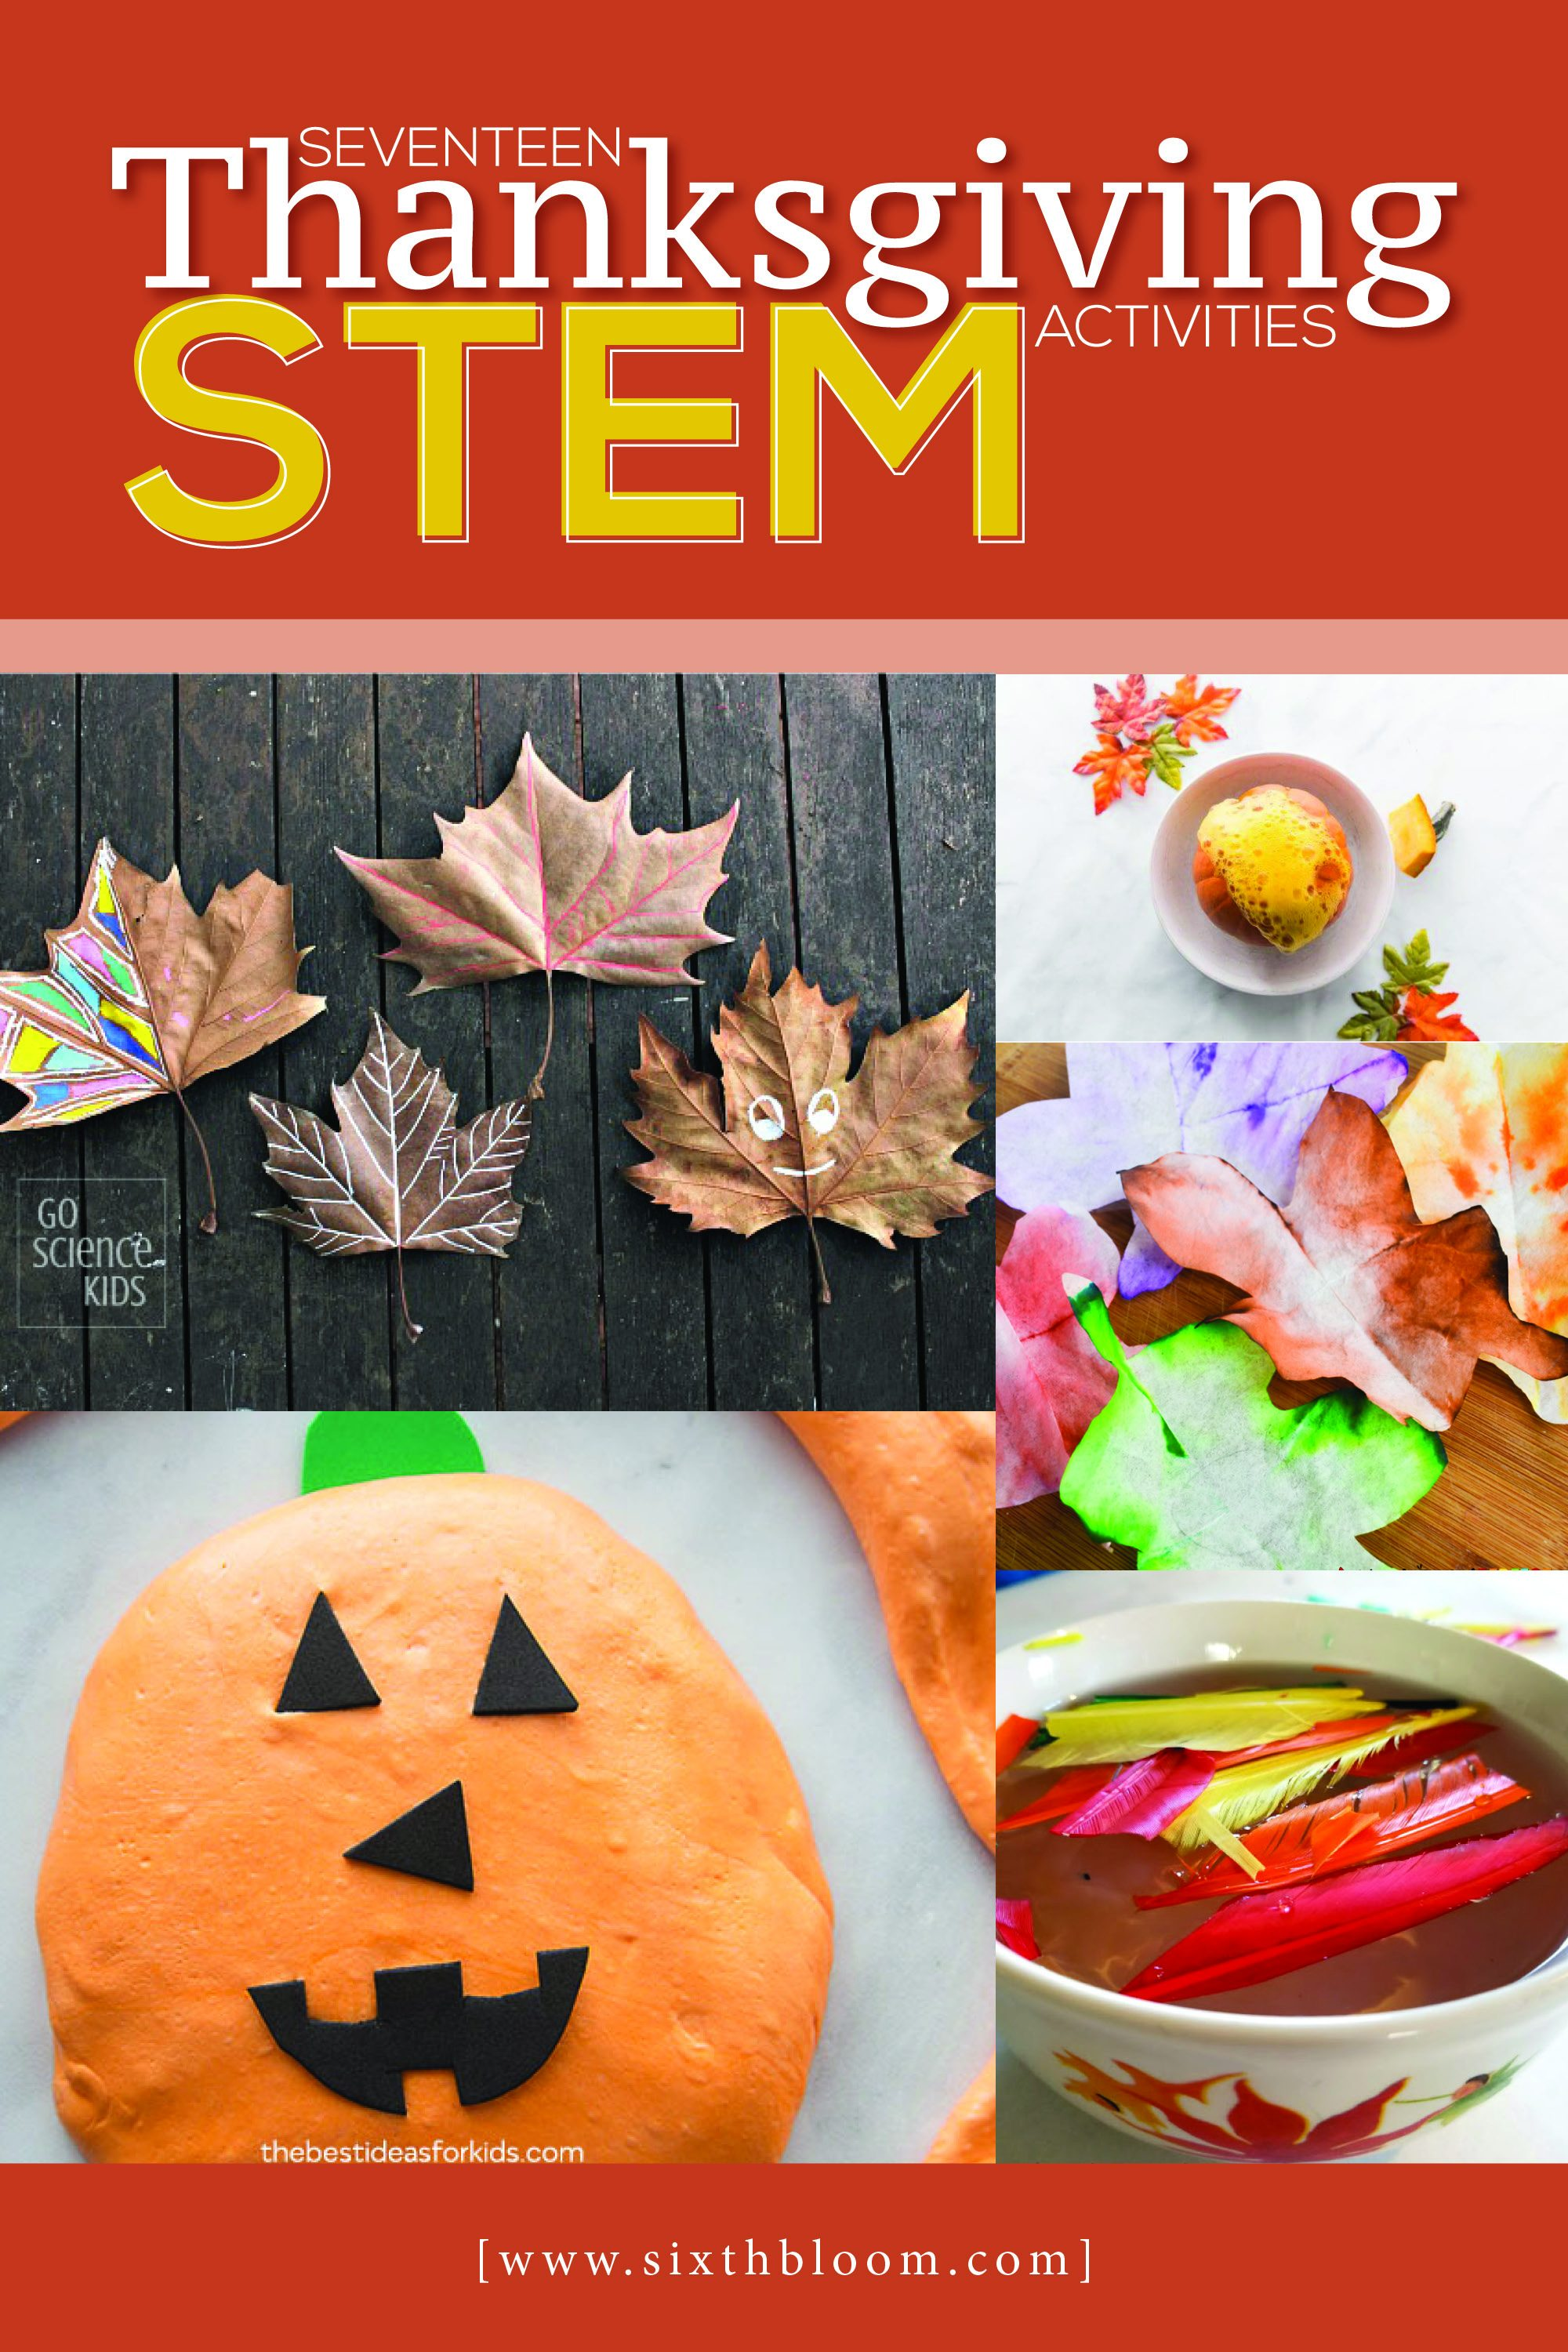 17 Thanksgiving Stem Activities Sixth Bloom